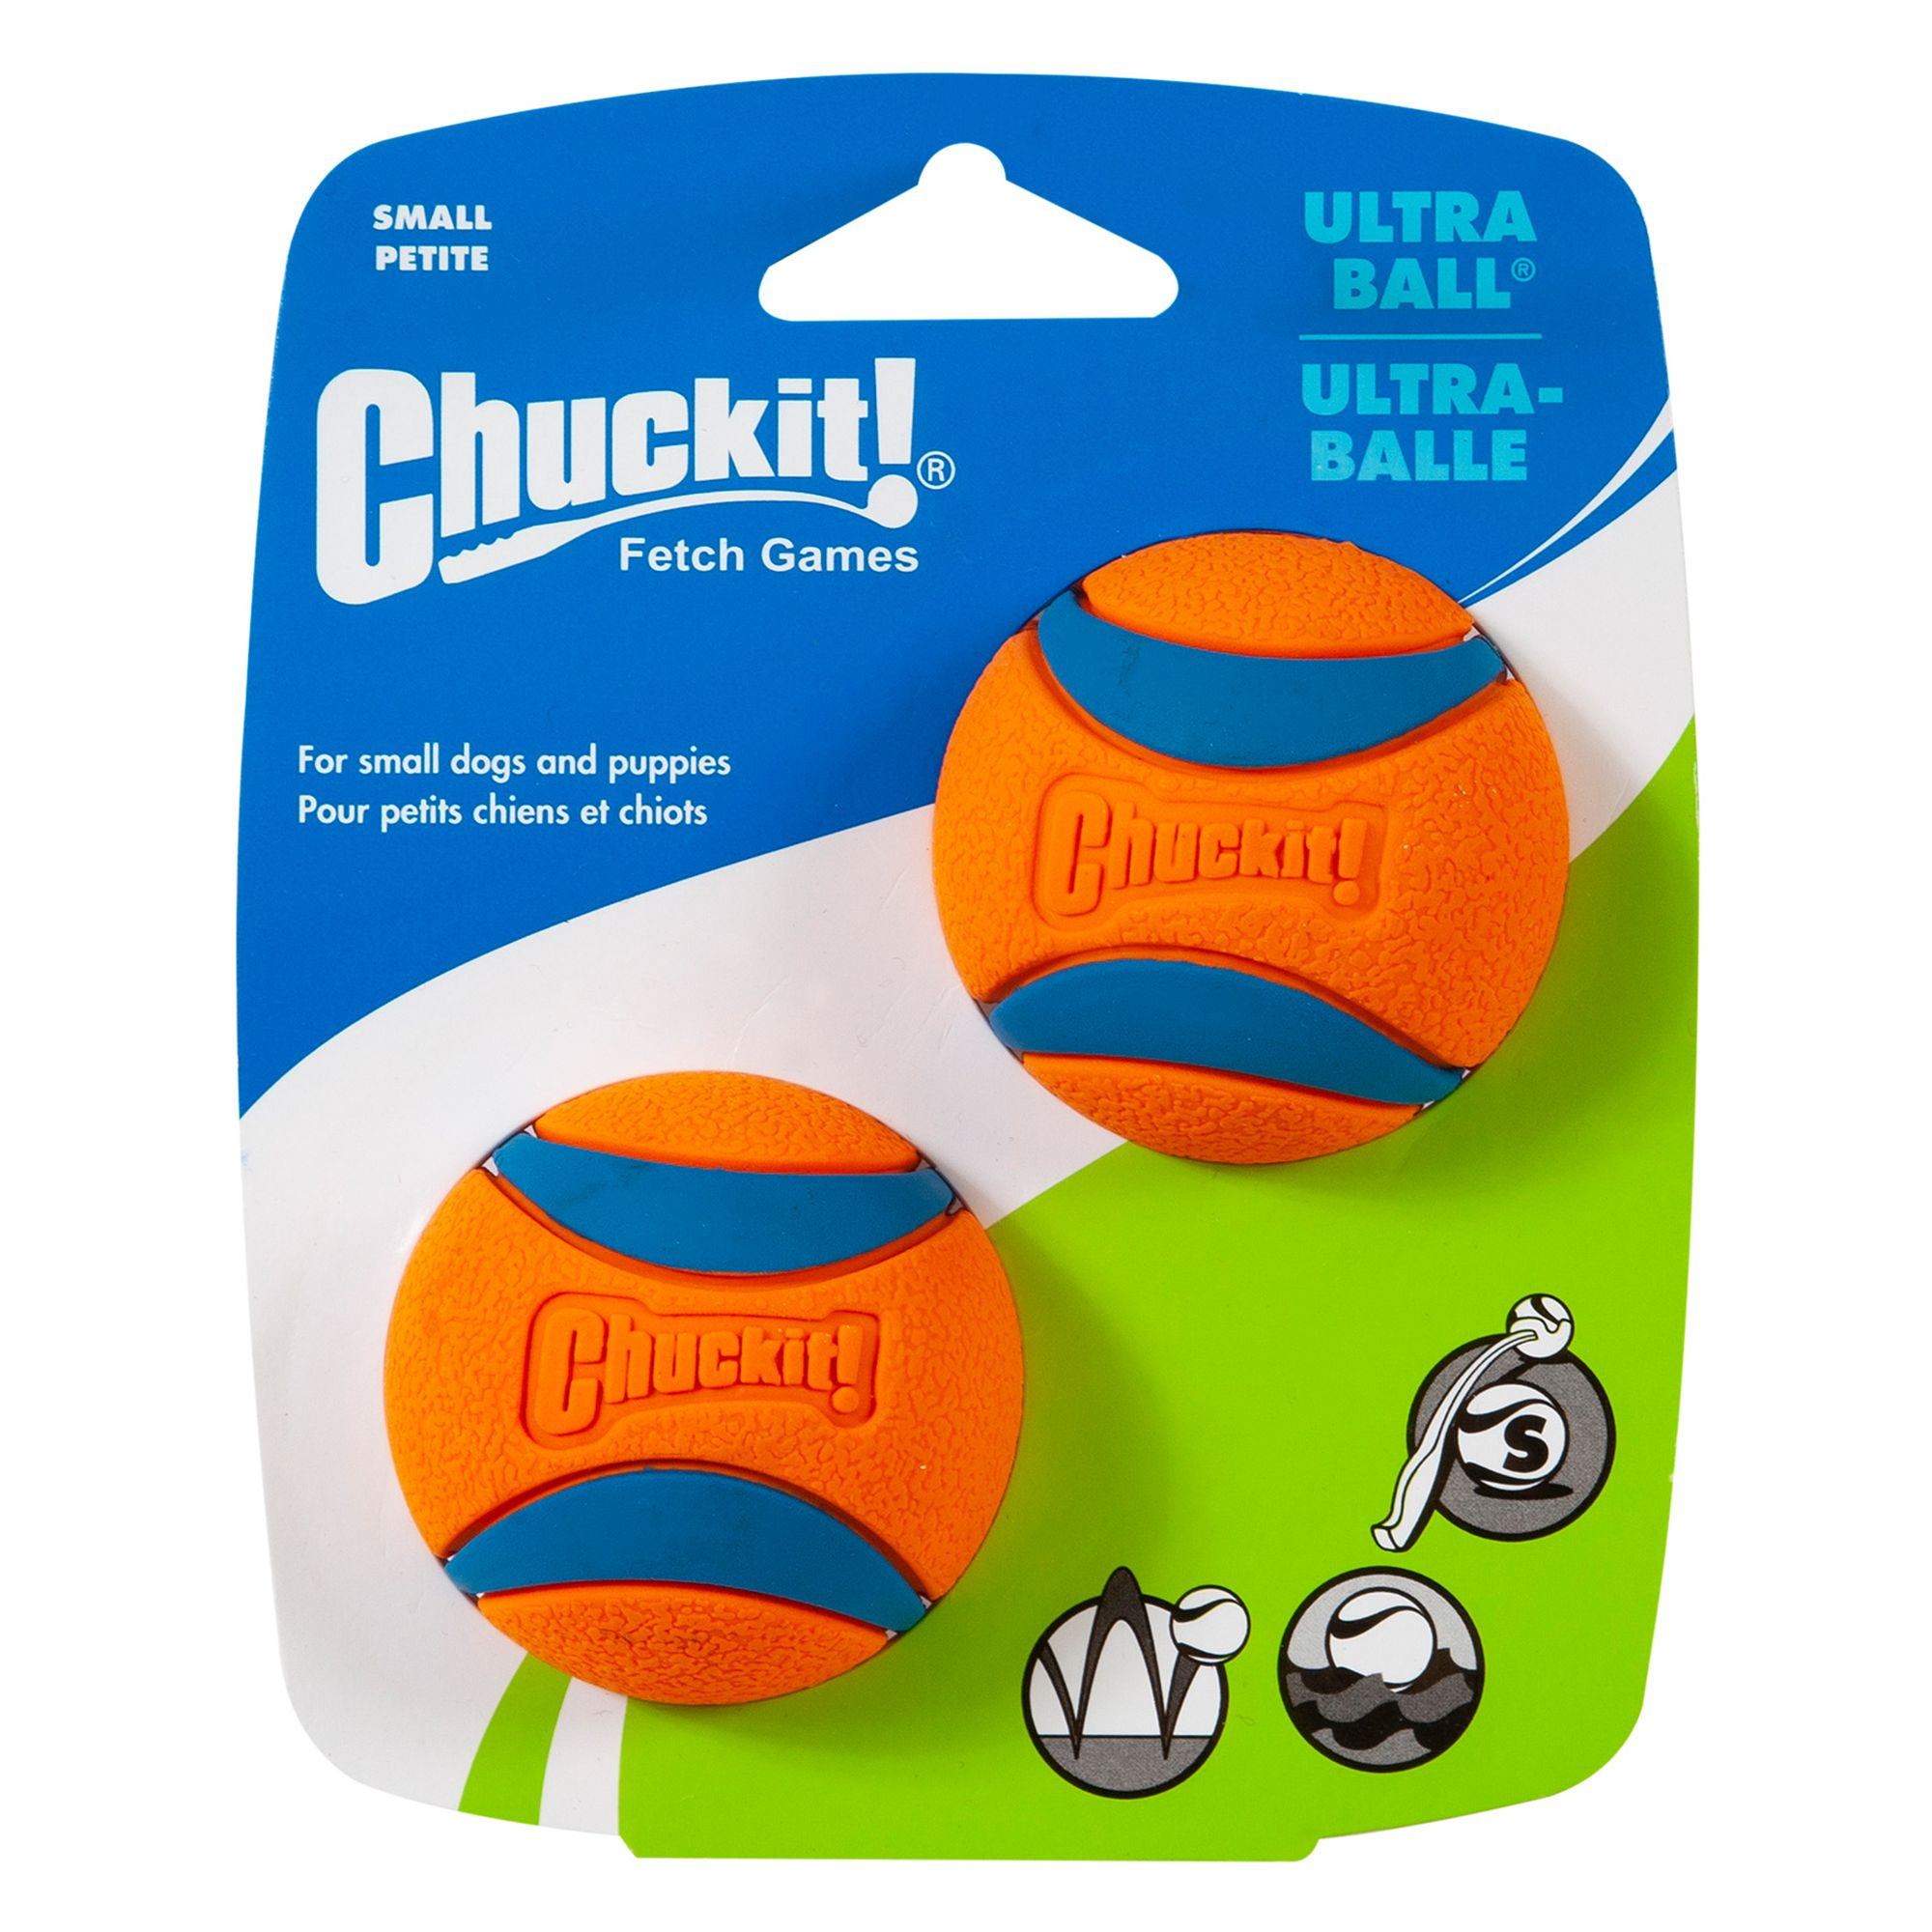 Chuckit! Ultra Ball Dog Toy size: Small, Orange & Blue